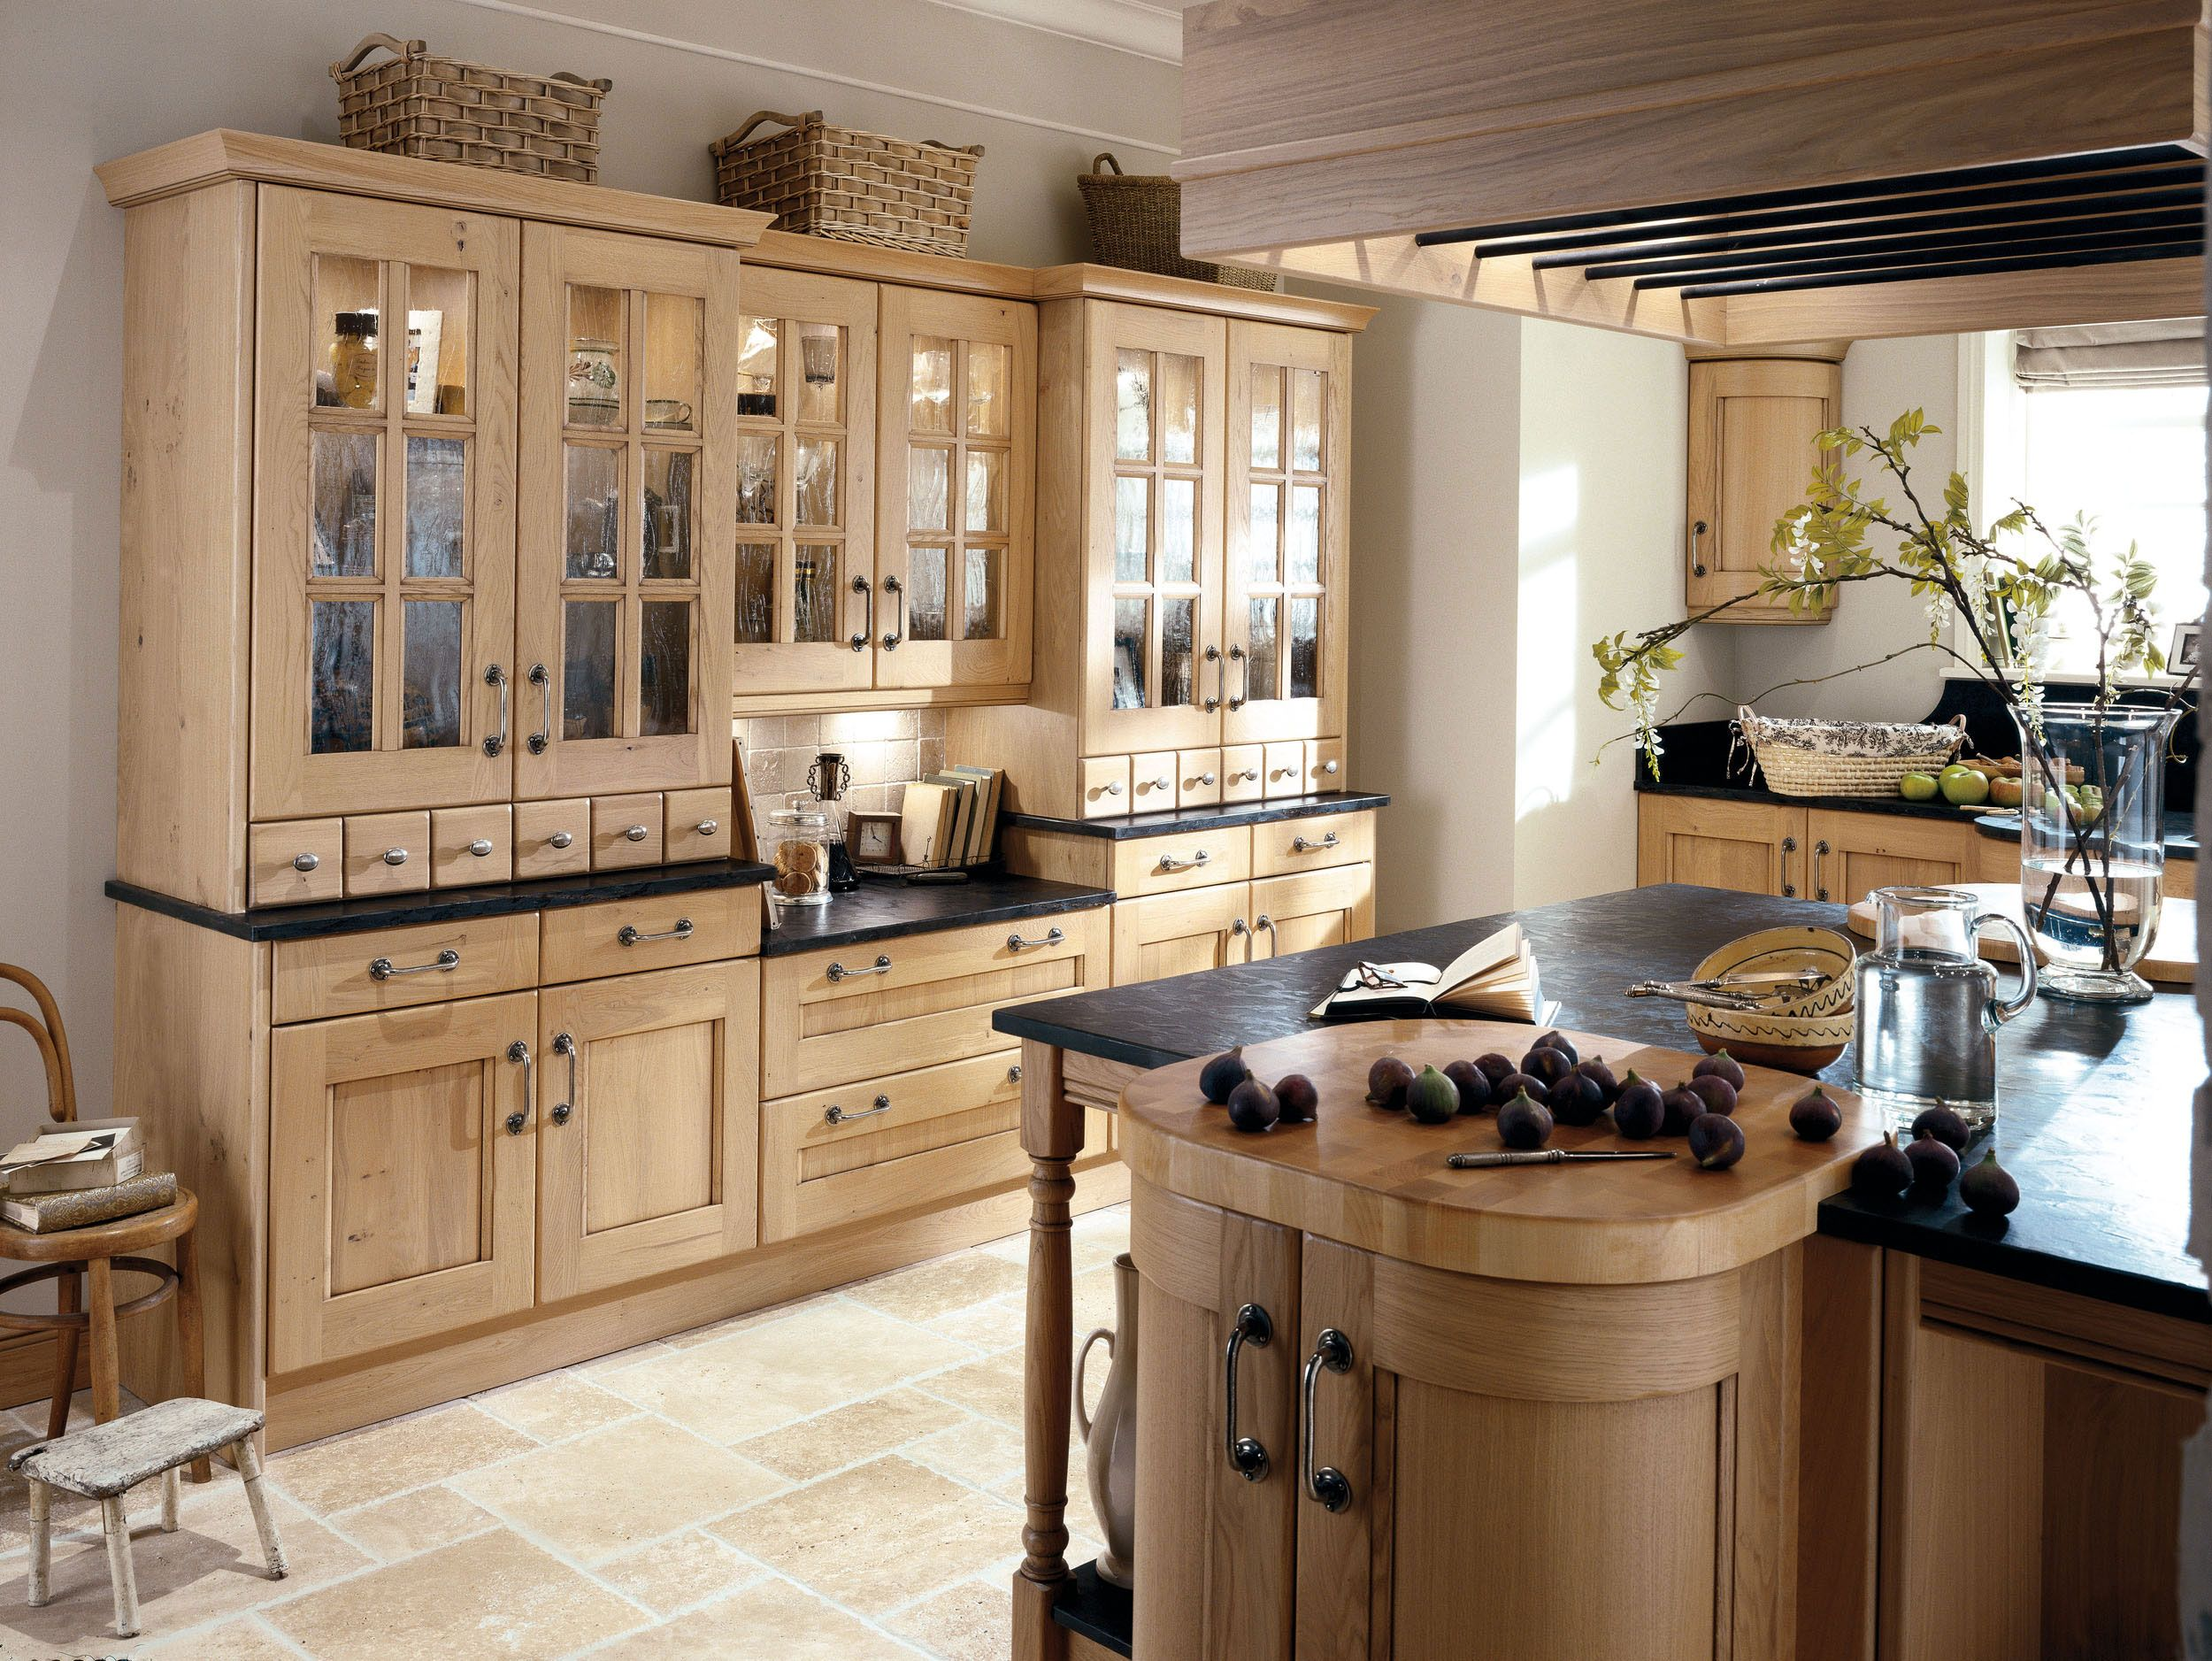 Classy Country Kitchen Designs | Mostic House Design Ideas:Home ...